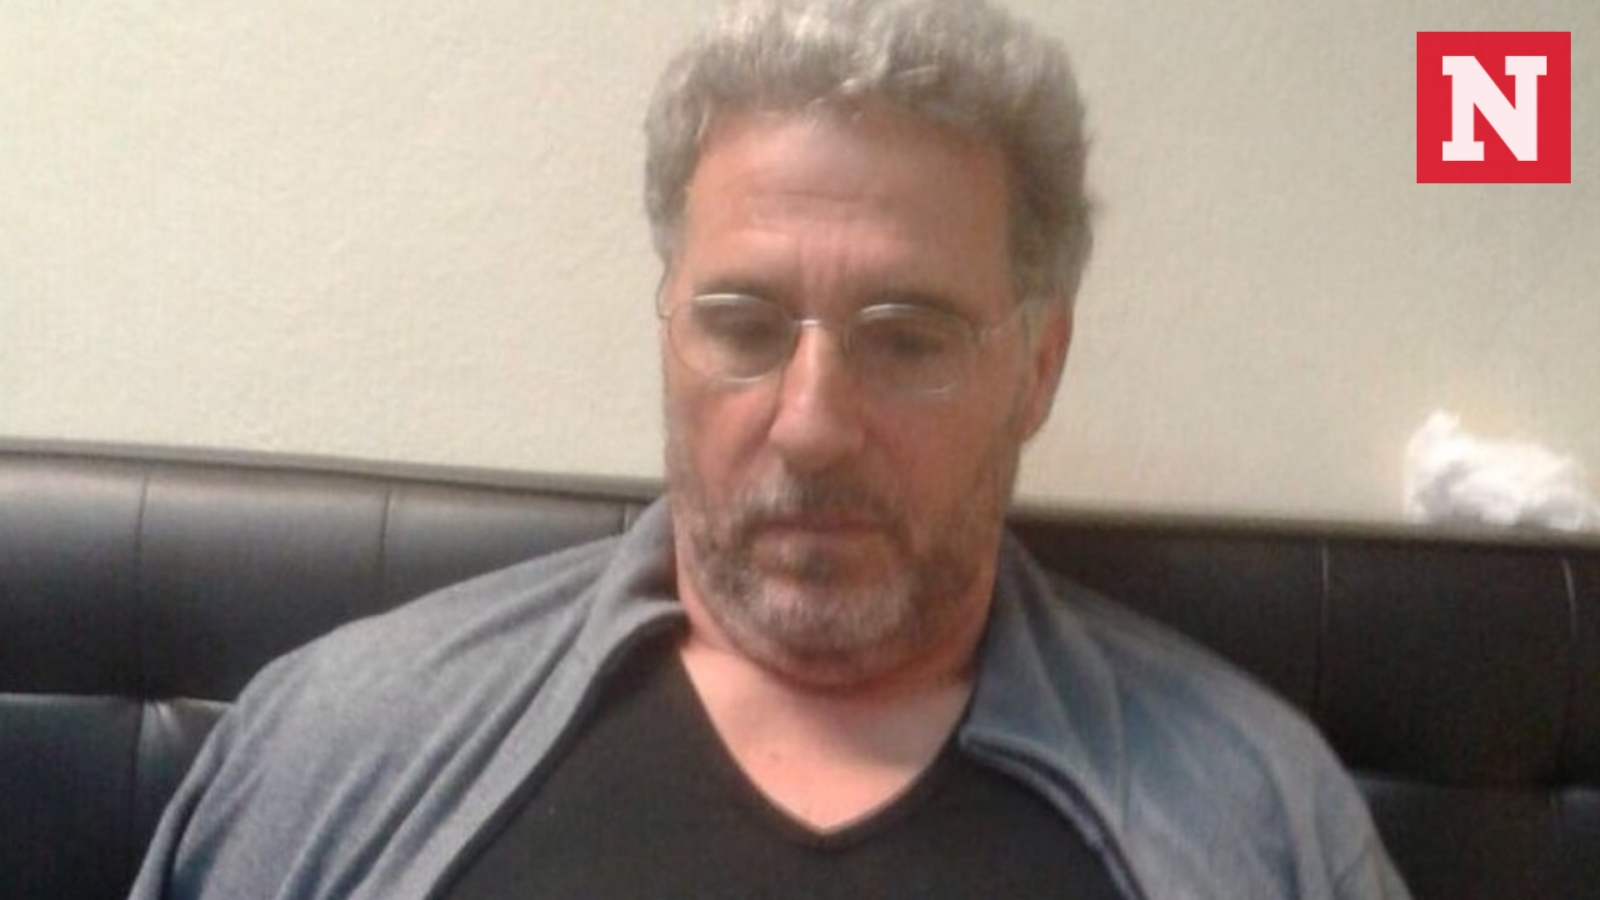 cocaine-king-of-milan-rocco-morabito-arrested-in-uruguay-after-23-years-on-the-run